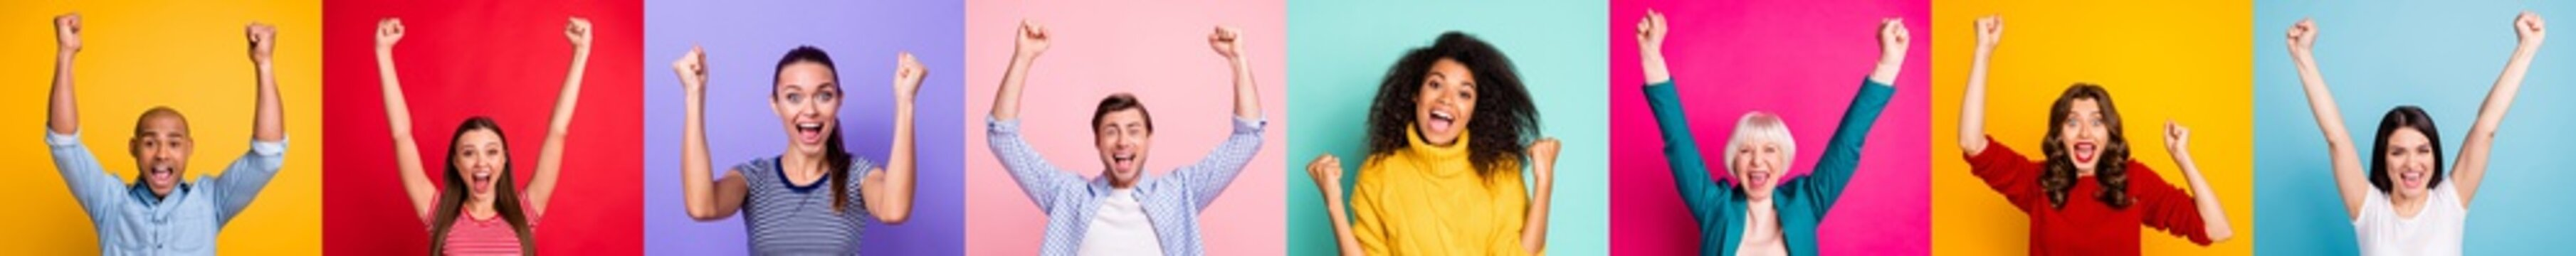 Photo collage of group of eight different delightful cheerful encouraged victorious champion millennials have good mood feel happy excited emotion isolated over multicolored background sale concept